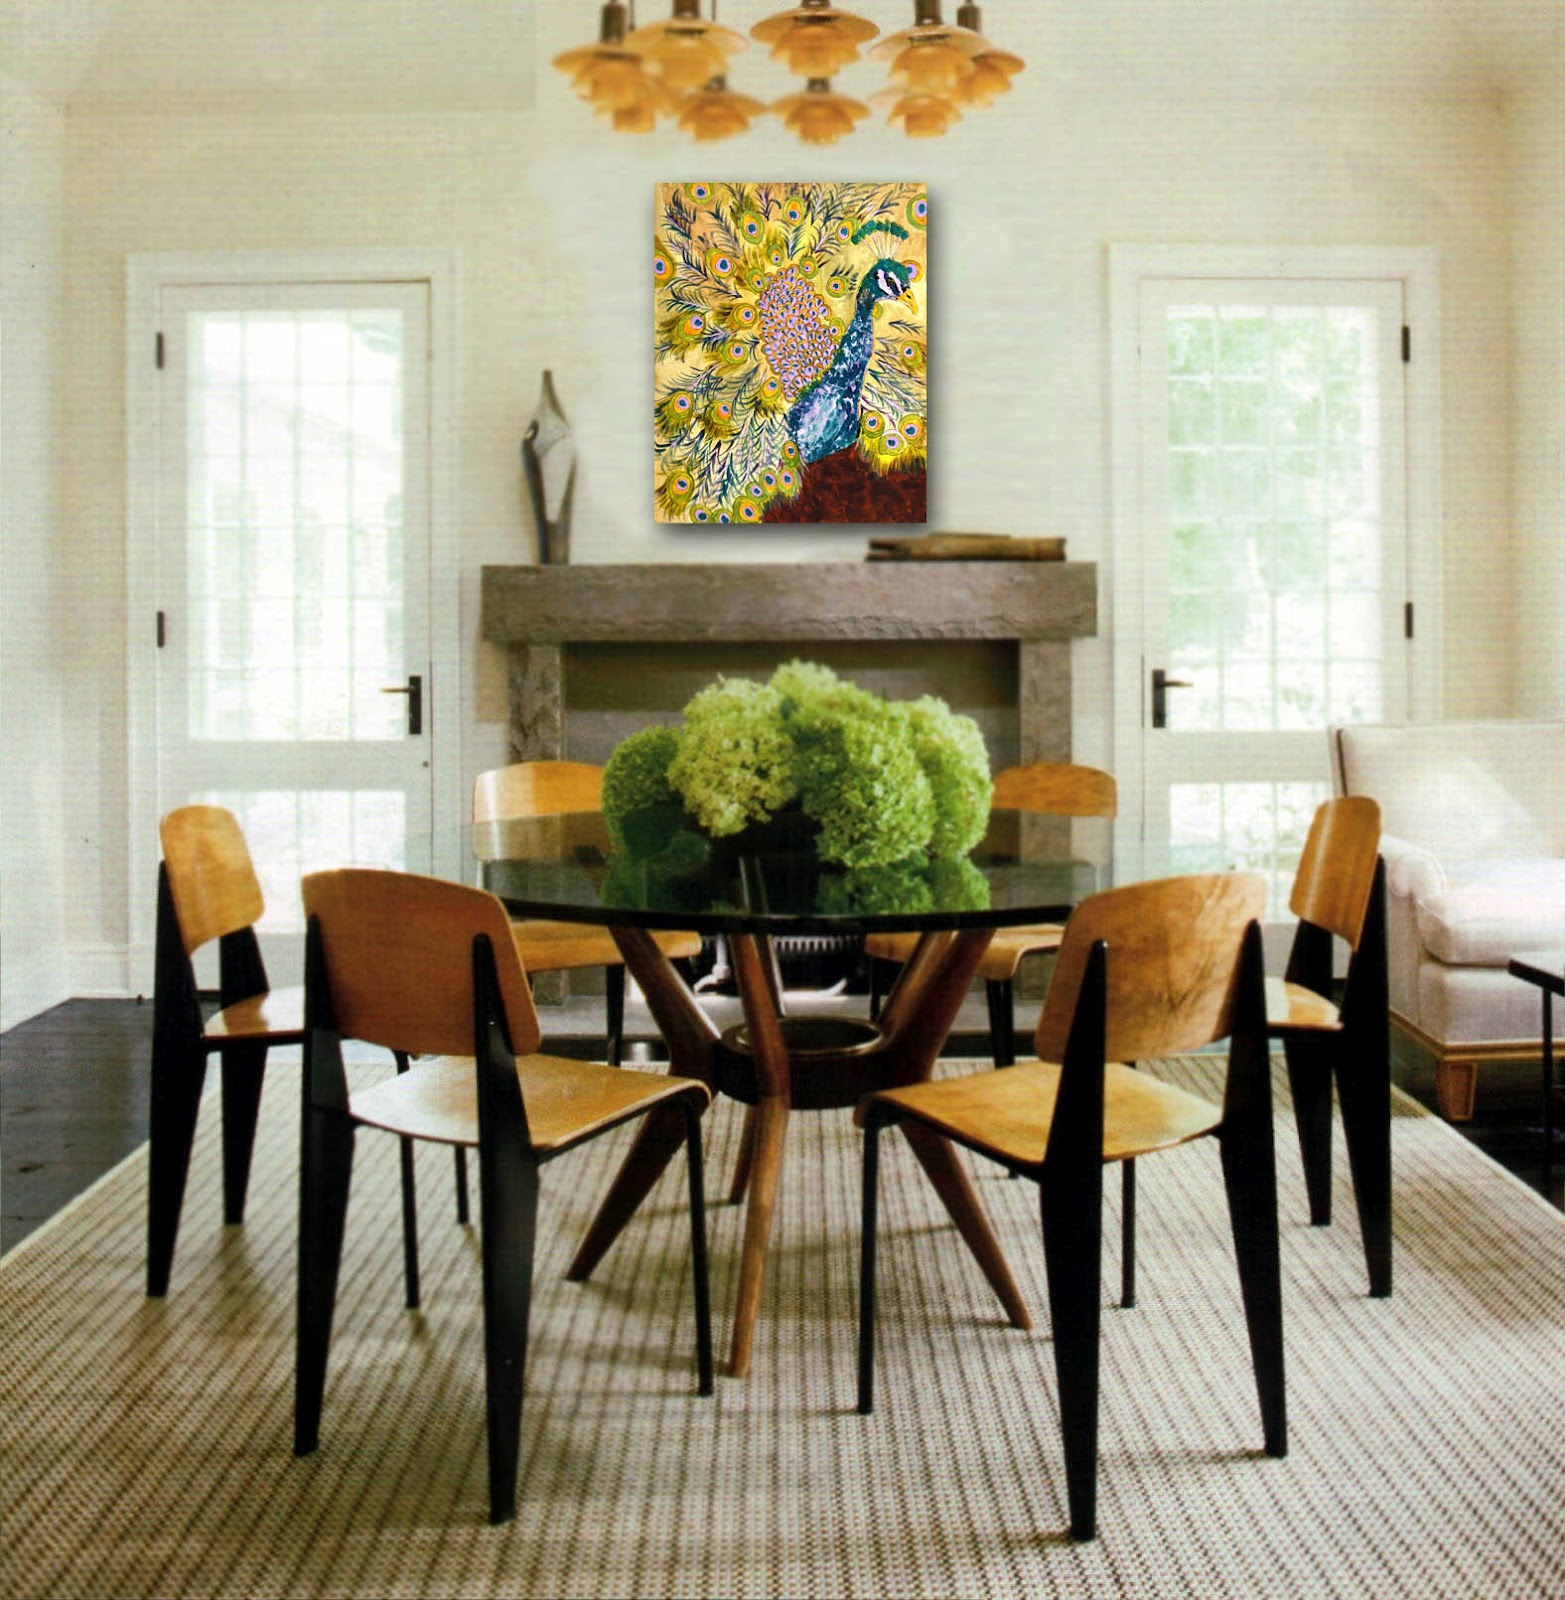 art blog for creative living: tasteful dining room decorating with